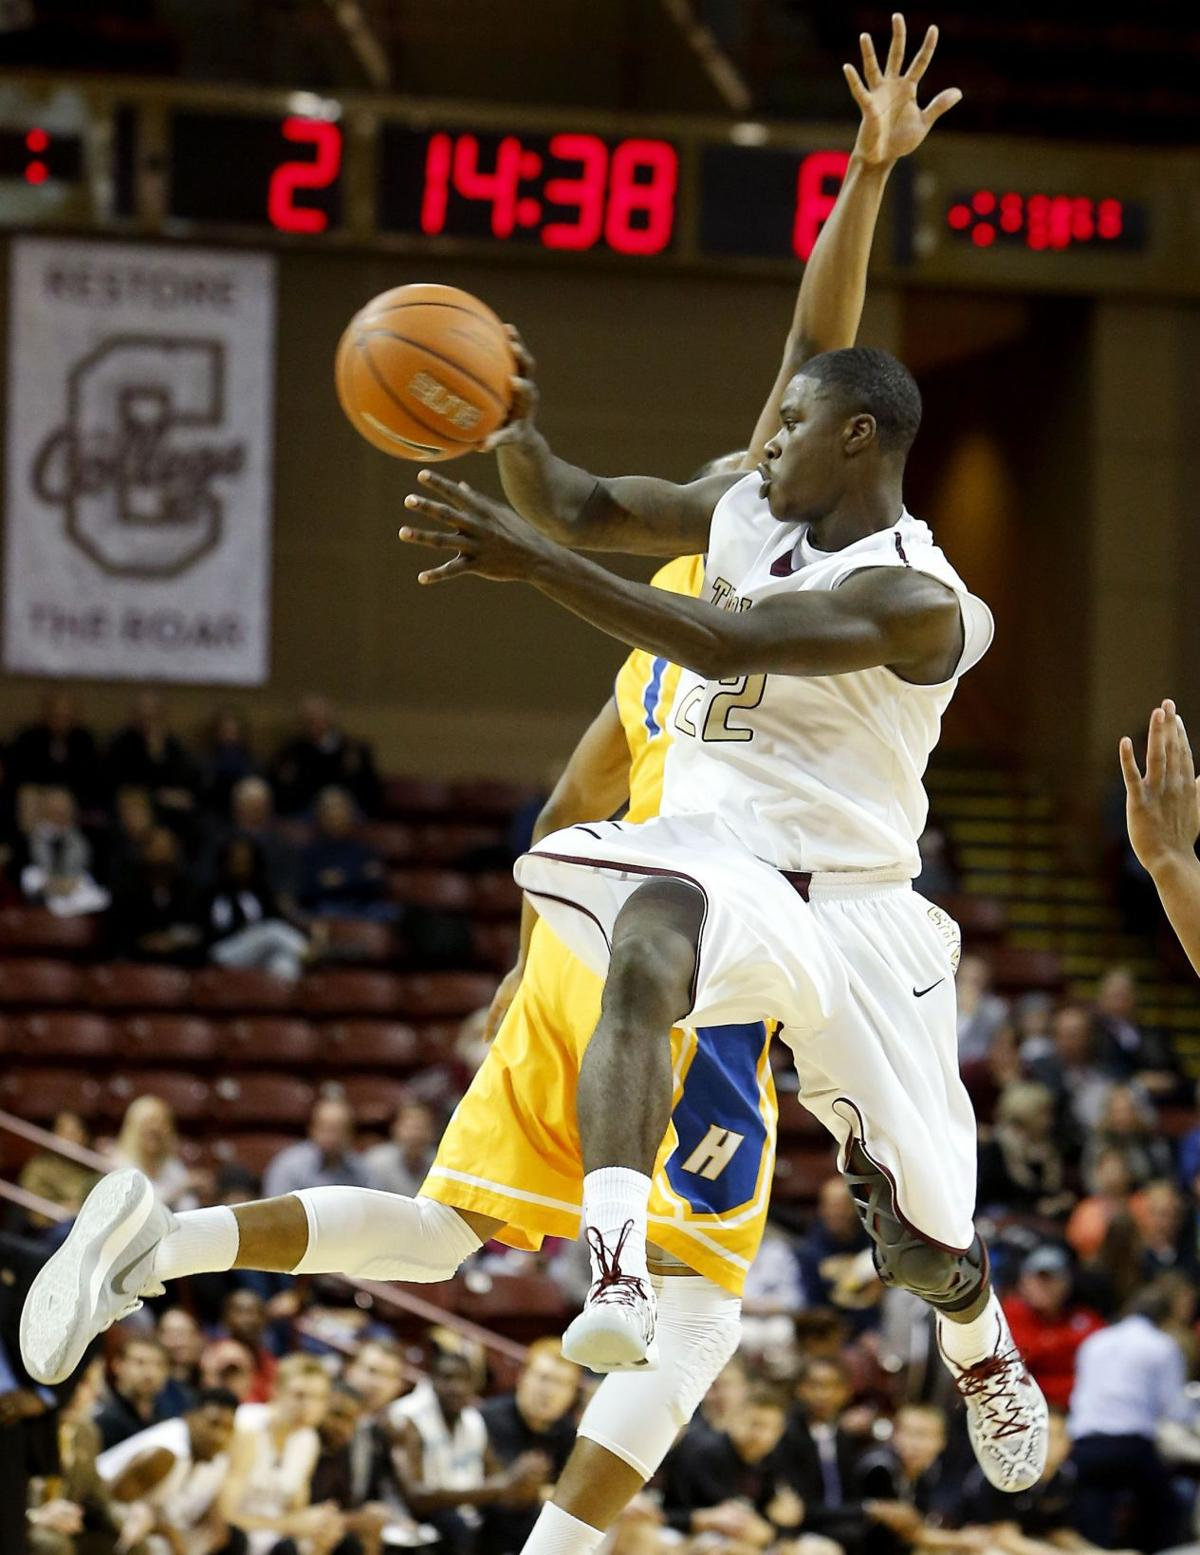 College of Charleston's Earl Grant, Cougars remain positive despite recent skid